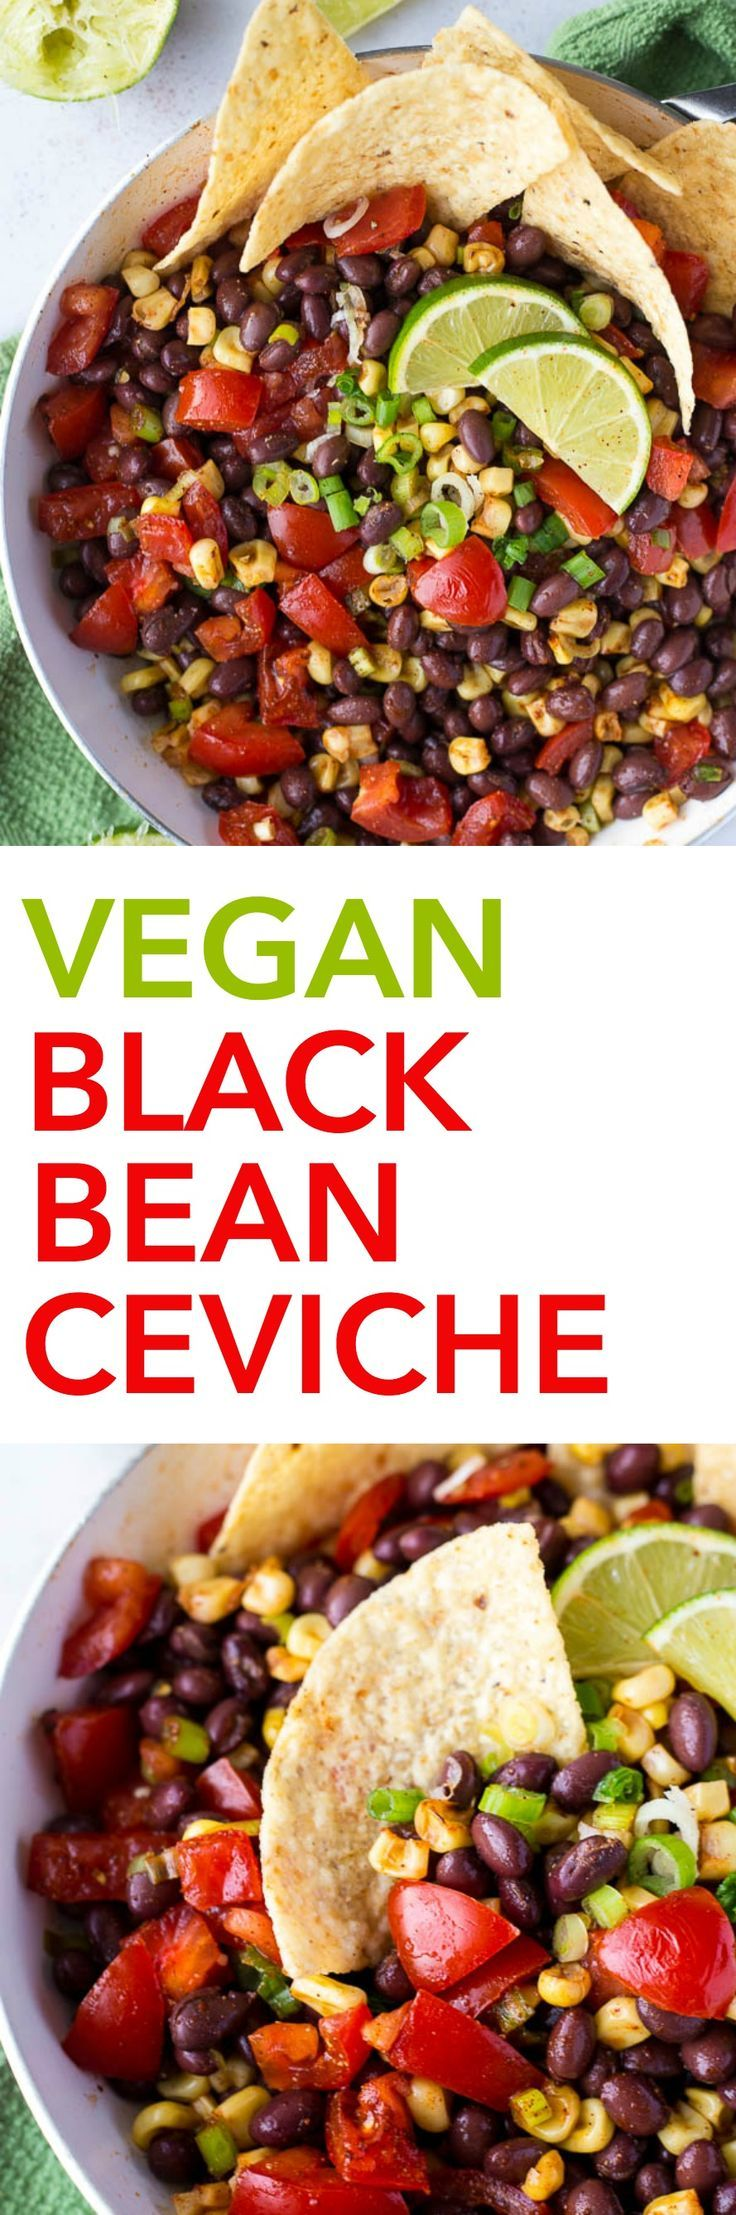 Vegan Black Bean Ceviche: A fresh, flavorful, gluten free, and plant-based ceviche that takes only 15 minutes to prepare! Serve it with tacos, with tortilla chips, or in lettuce wraps! || http://fooduzzi.com recipe